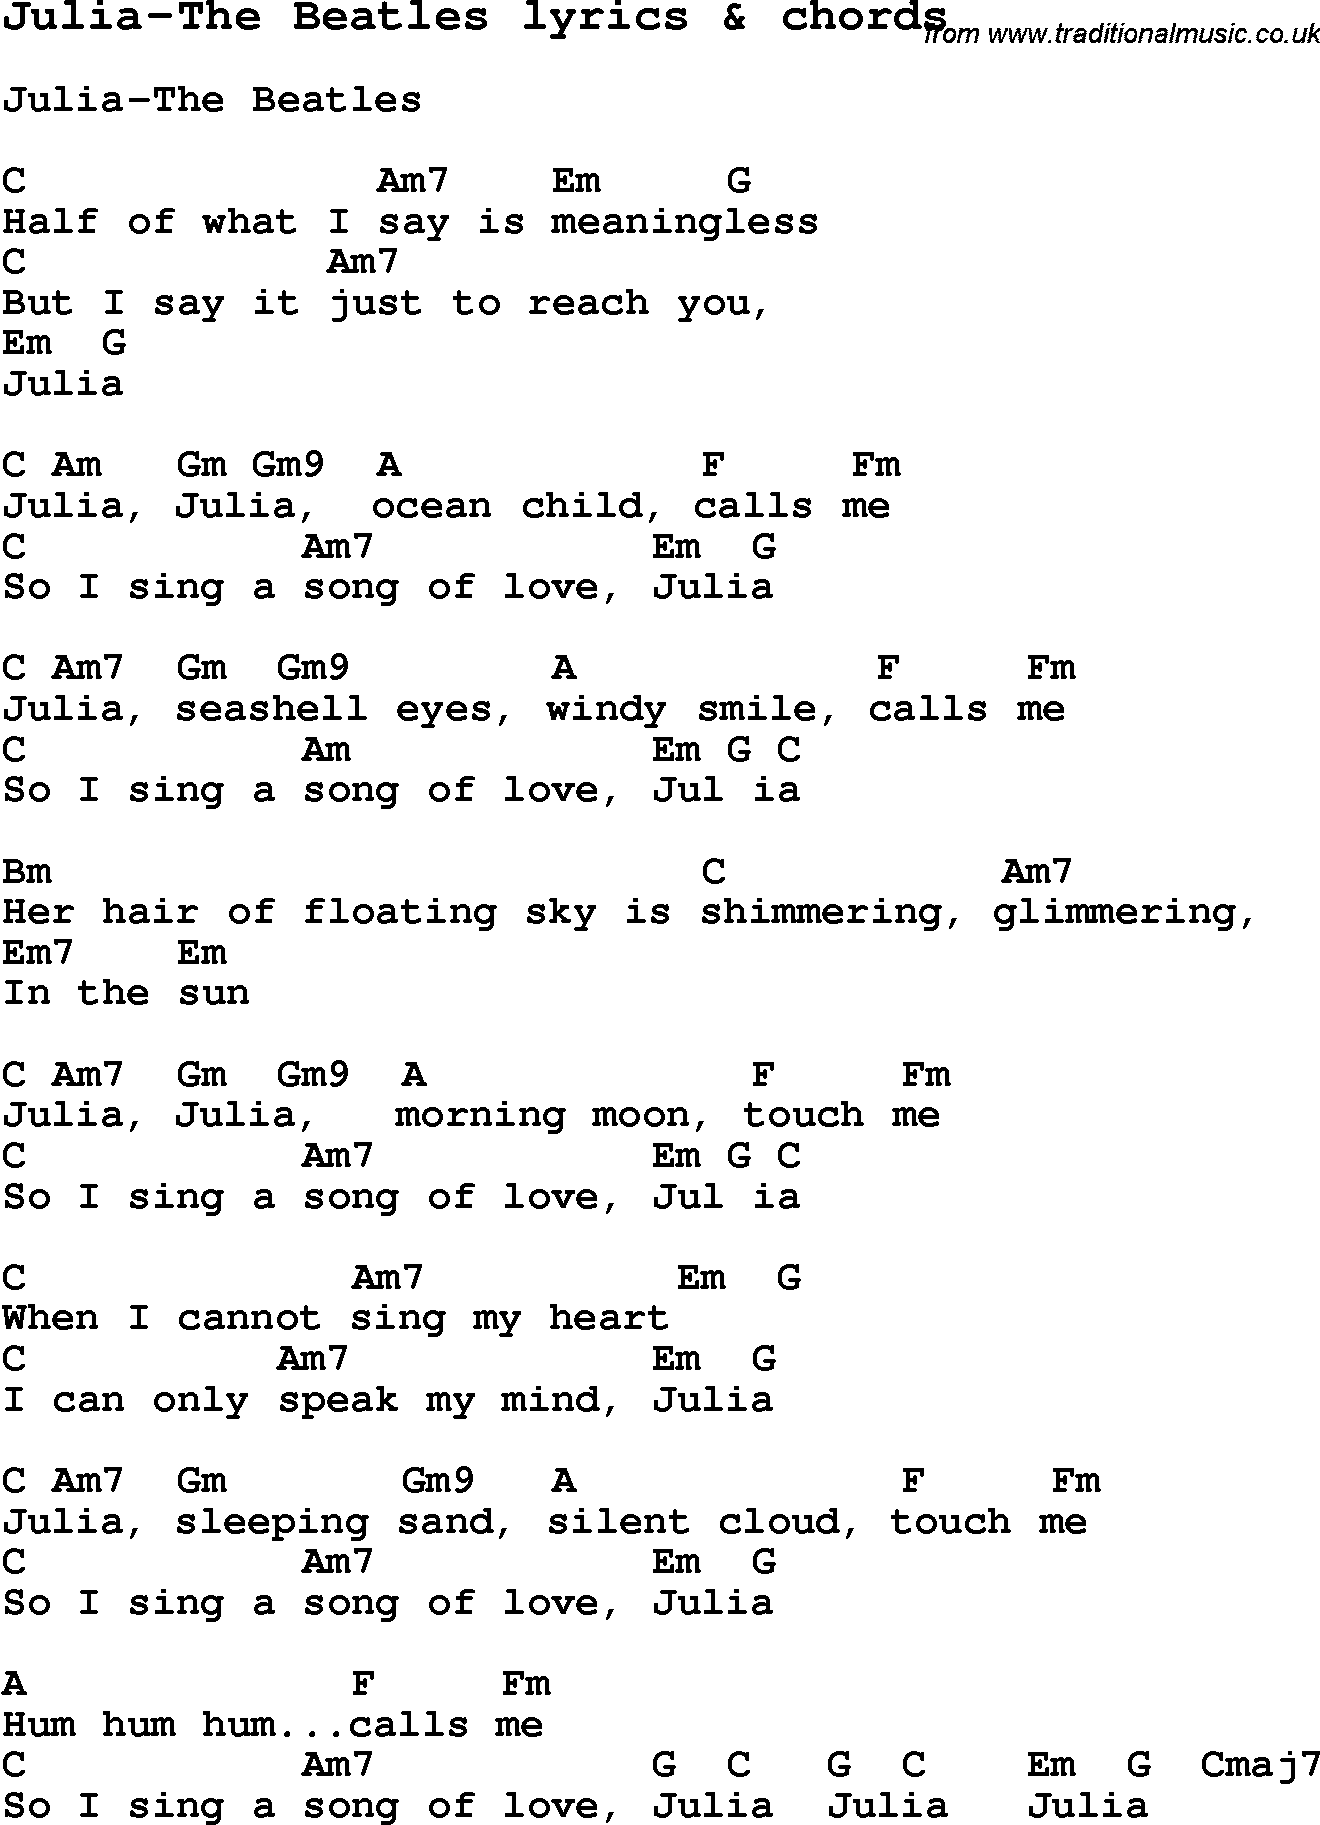 Love song lyrics for julia the beatles with chords for ukulele love song lyrics for julia the beatles with chords for ukulele guitar banjo hexwebz Choice Image